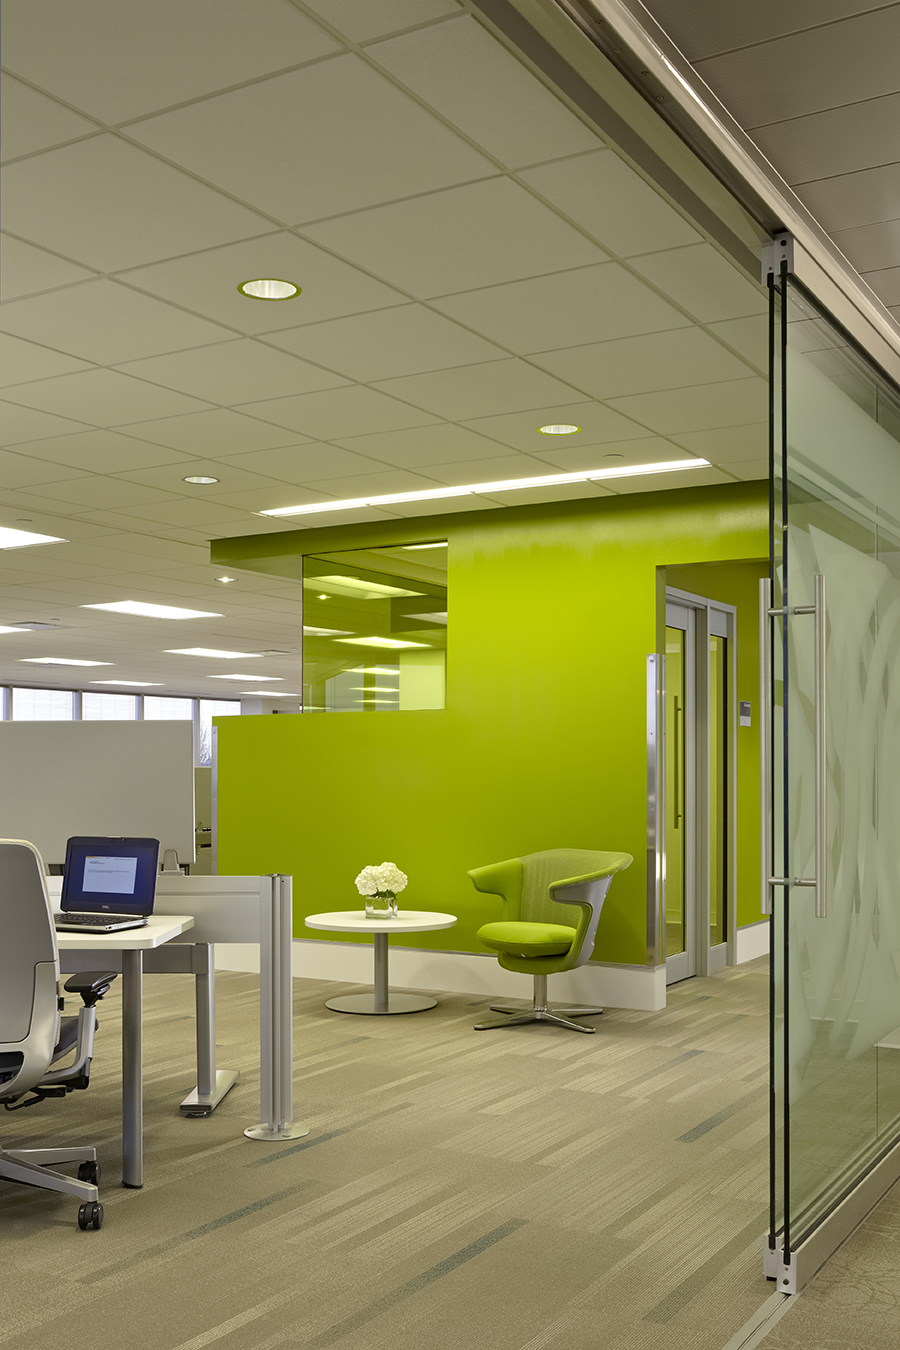 3_5th Floor - Green Focus Room-1.jpg